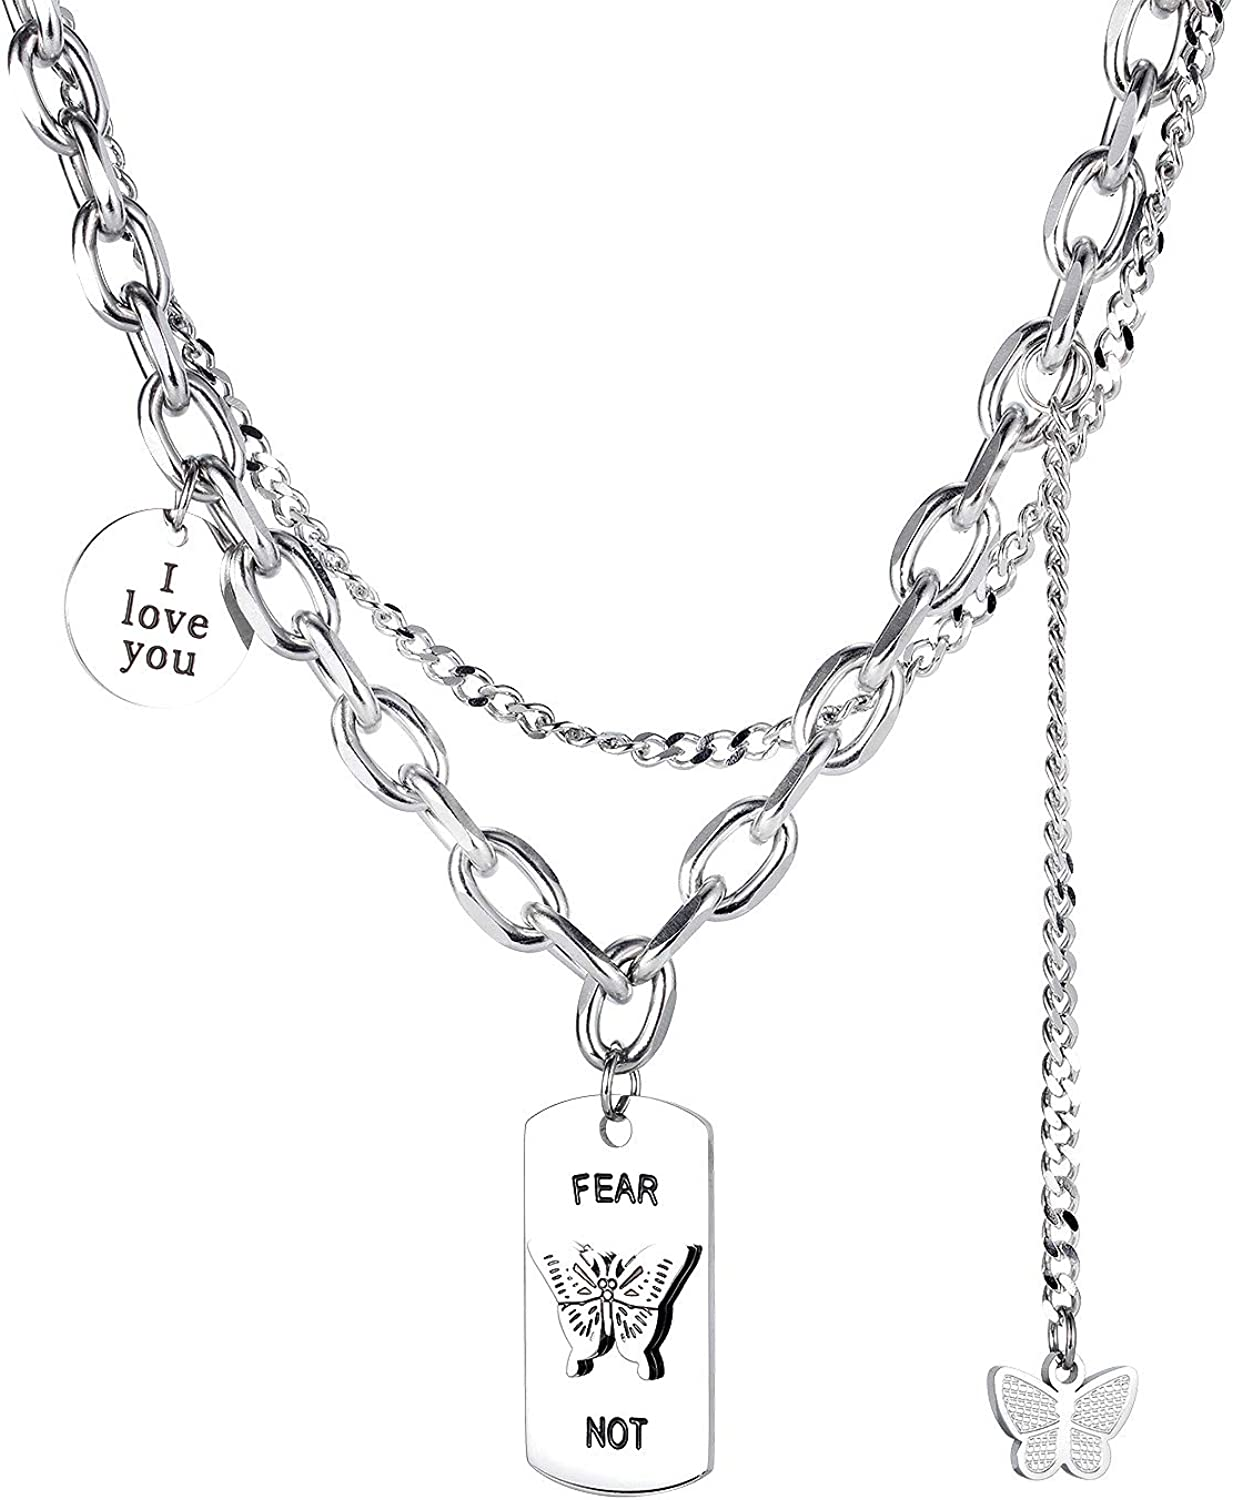 IFUAQZ Women's Stainless Steel Butterfly Dog Tag Pendant Choker Necklace Collar Sweater Chain Adjustable